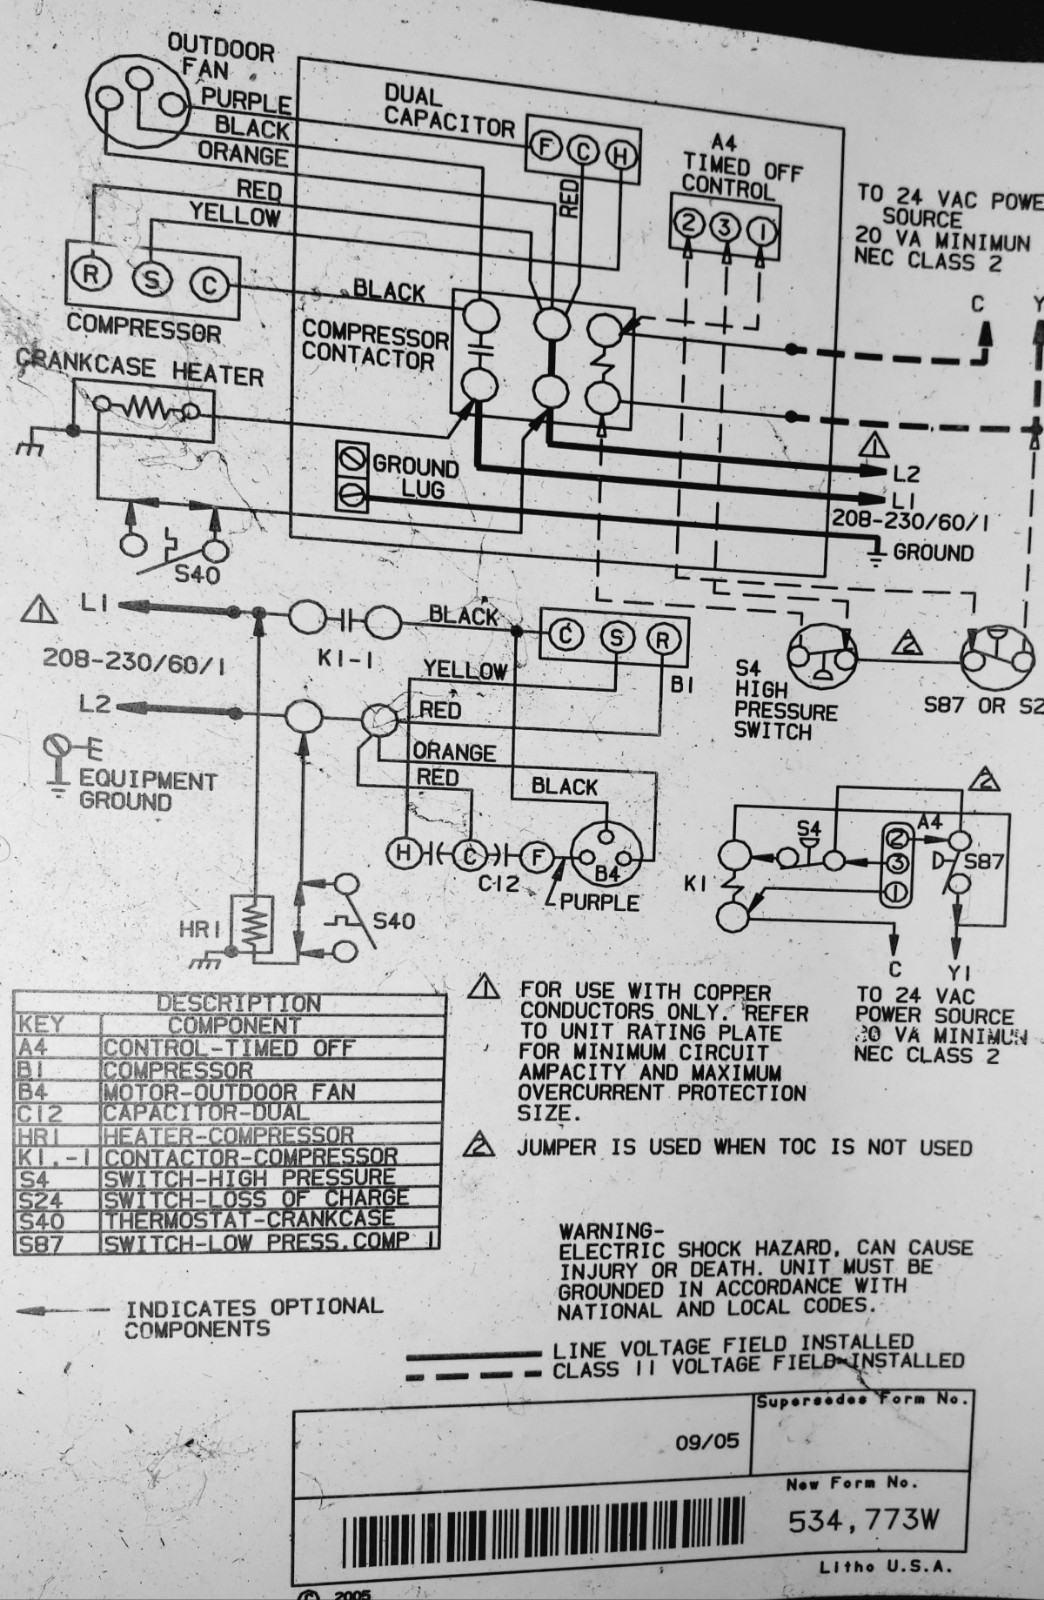 hight resolution of wiring diagram from inside the unit ref c12 air conditioning compressor capacitor resistance